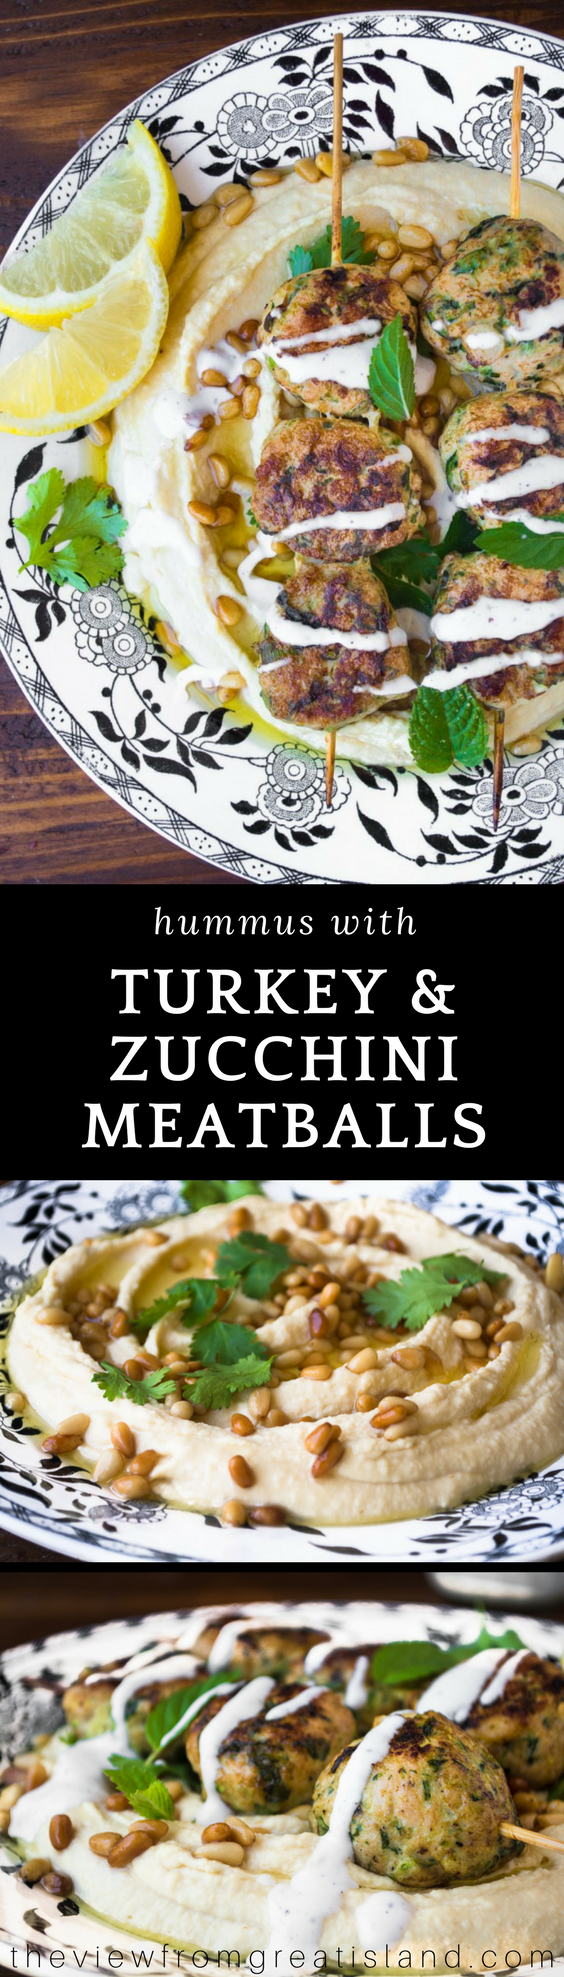 Hummus with Turkey & Zucchini Meatballs ~ I made a meal out of my favorite creamy hummus appetizer simply by topping it with tender turkey meatballs lightened up with zucchini. #appetizer #maincourse #healthydinner #middleeastern #hummus #meatballs #turkeymeatballs #healthymeatballs #zucchini #groundturkey #yotamottolenghi #ottolenghi